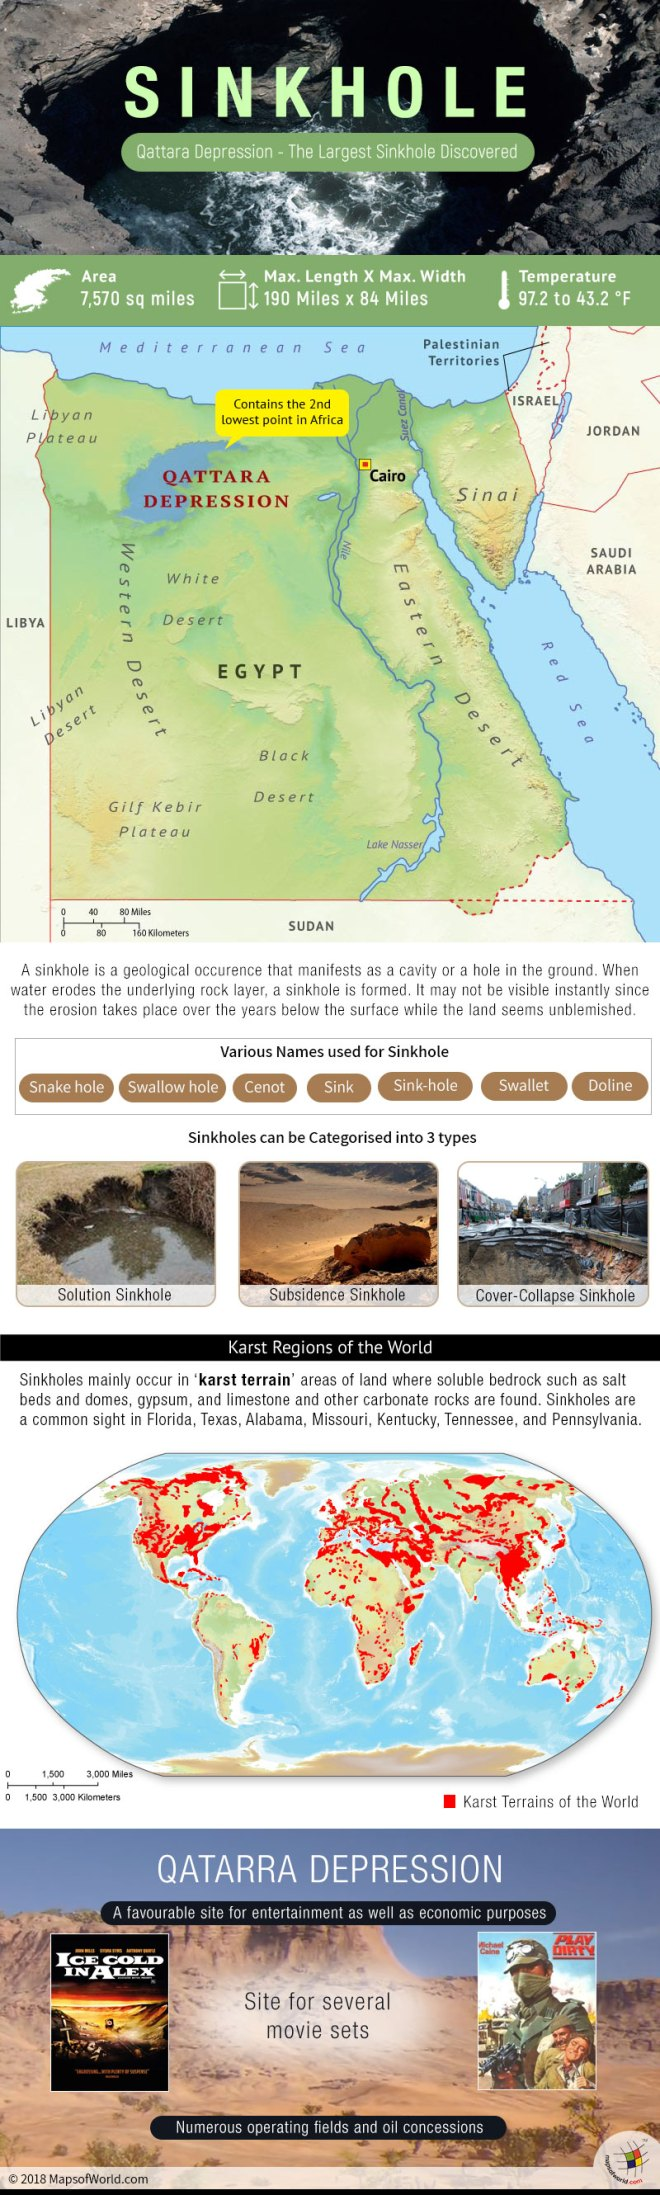 Infographic and map on the largest sinkhole in the world